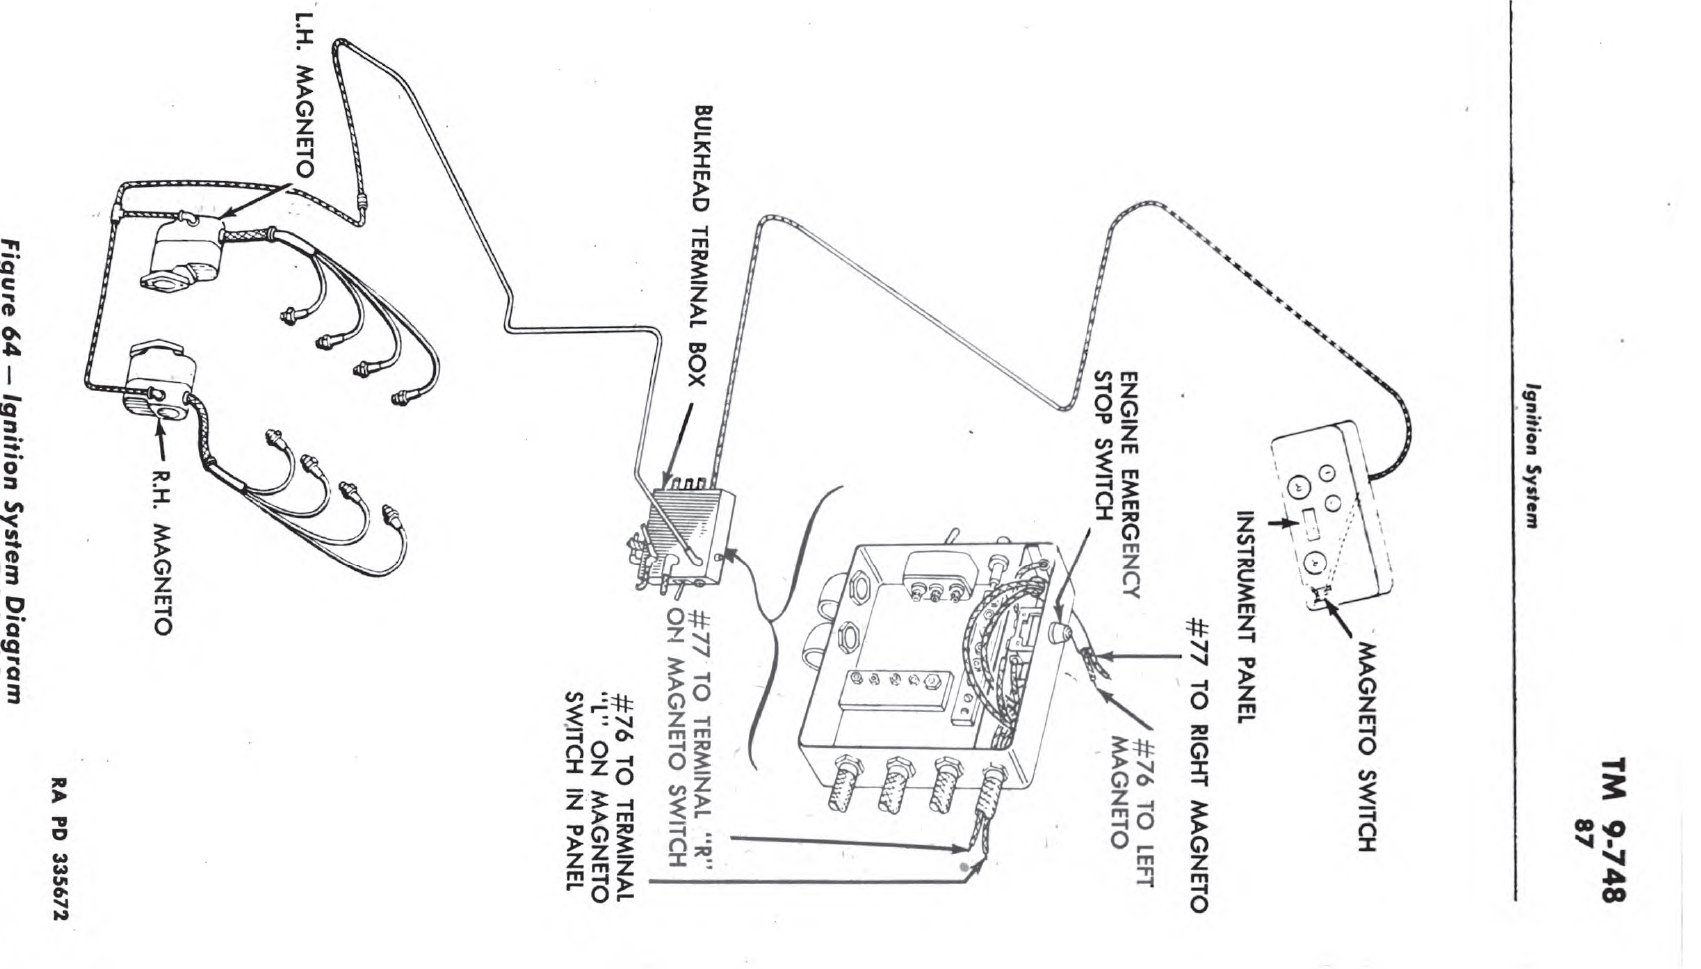 2001 western star wiring diagram dash